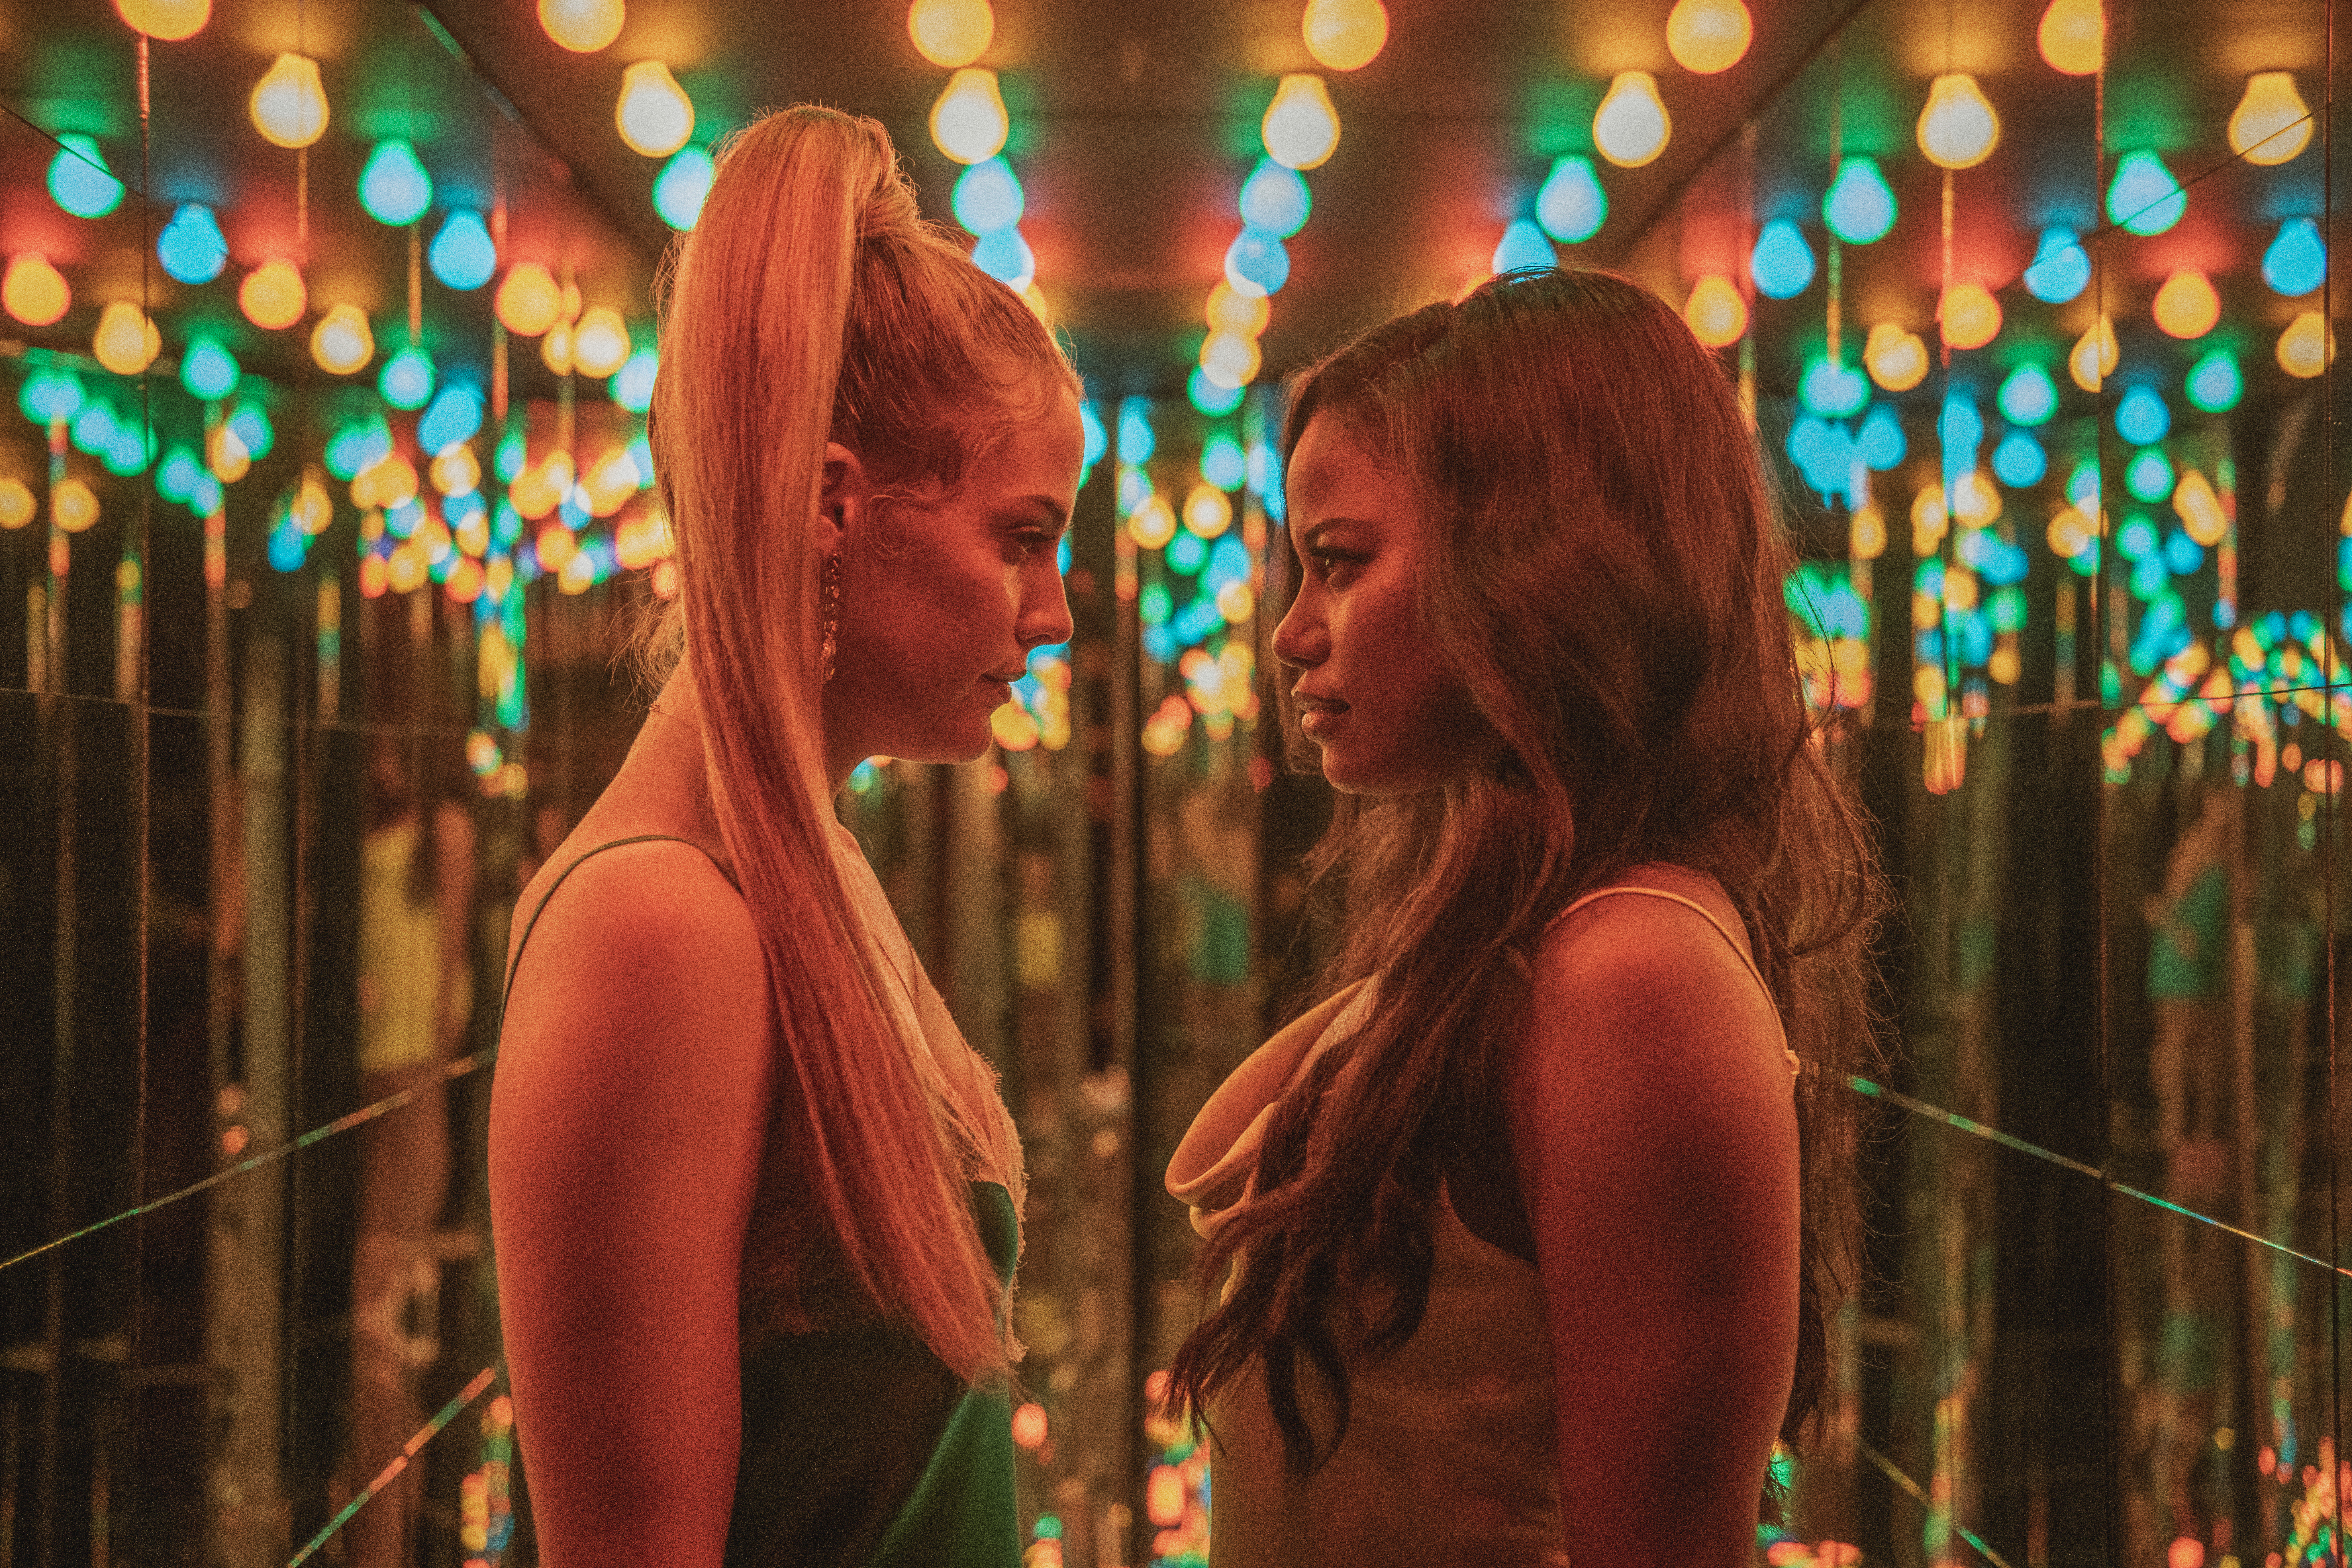 Riley Keough (left) and Taylour Paige (right) in 'Zola'